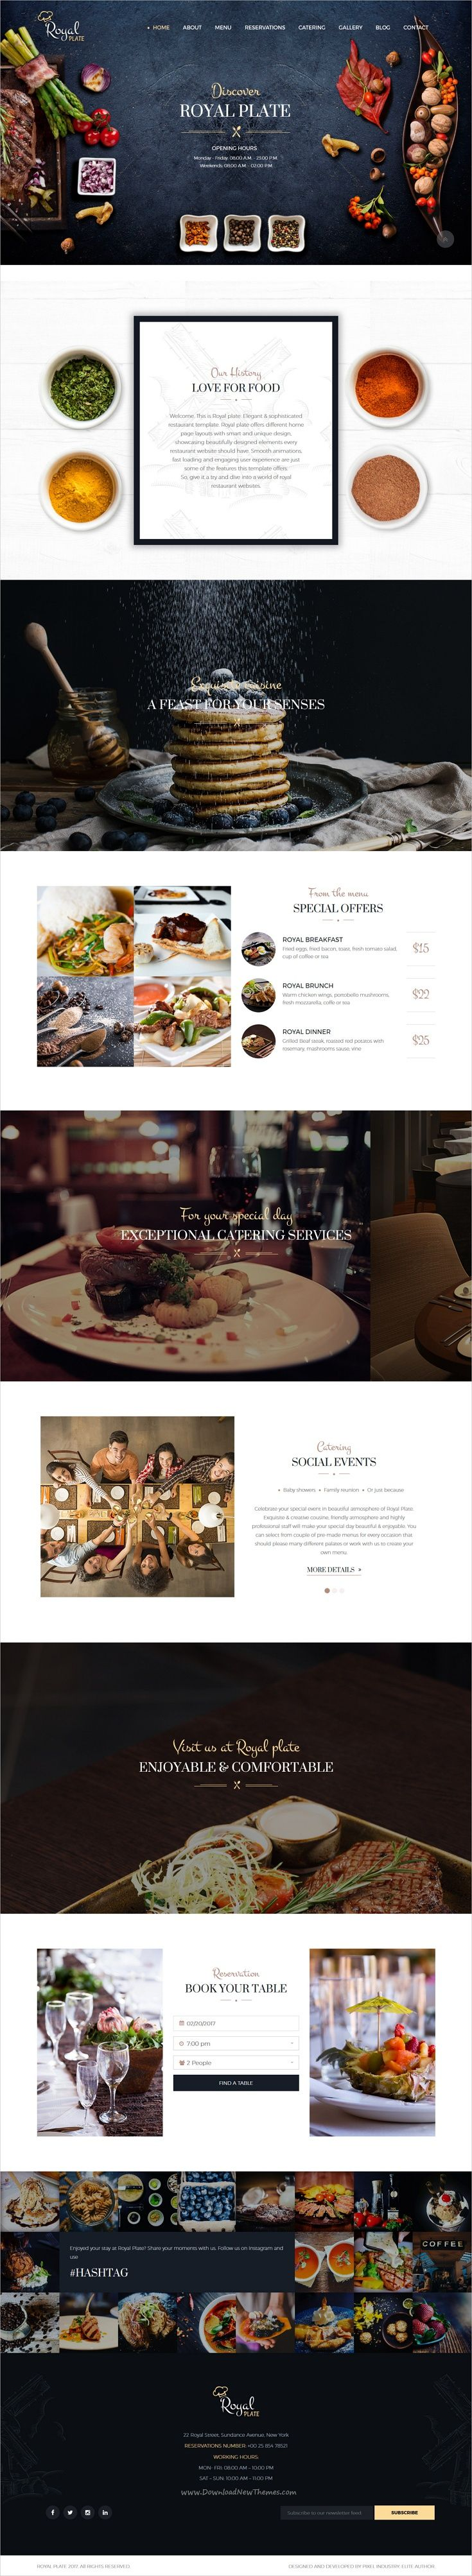 Royal Plate is a responsive #WordPress theme created for #restaurants and #catering companies websites download now➩